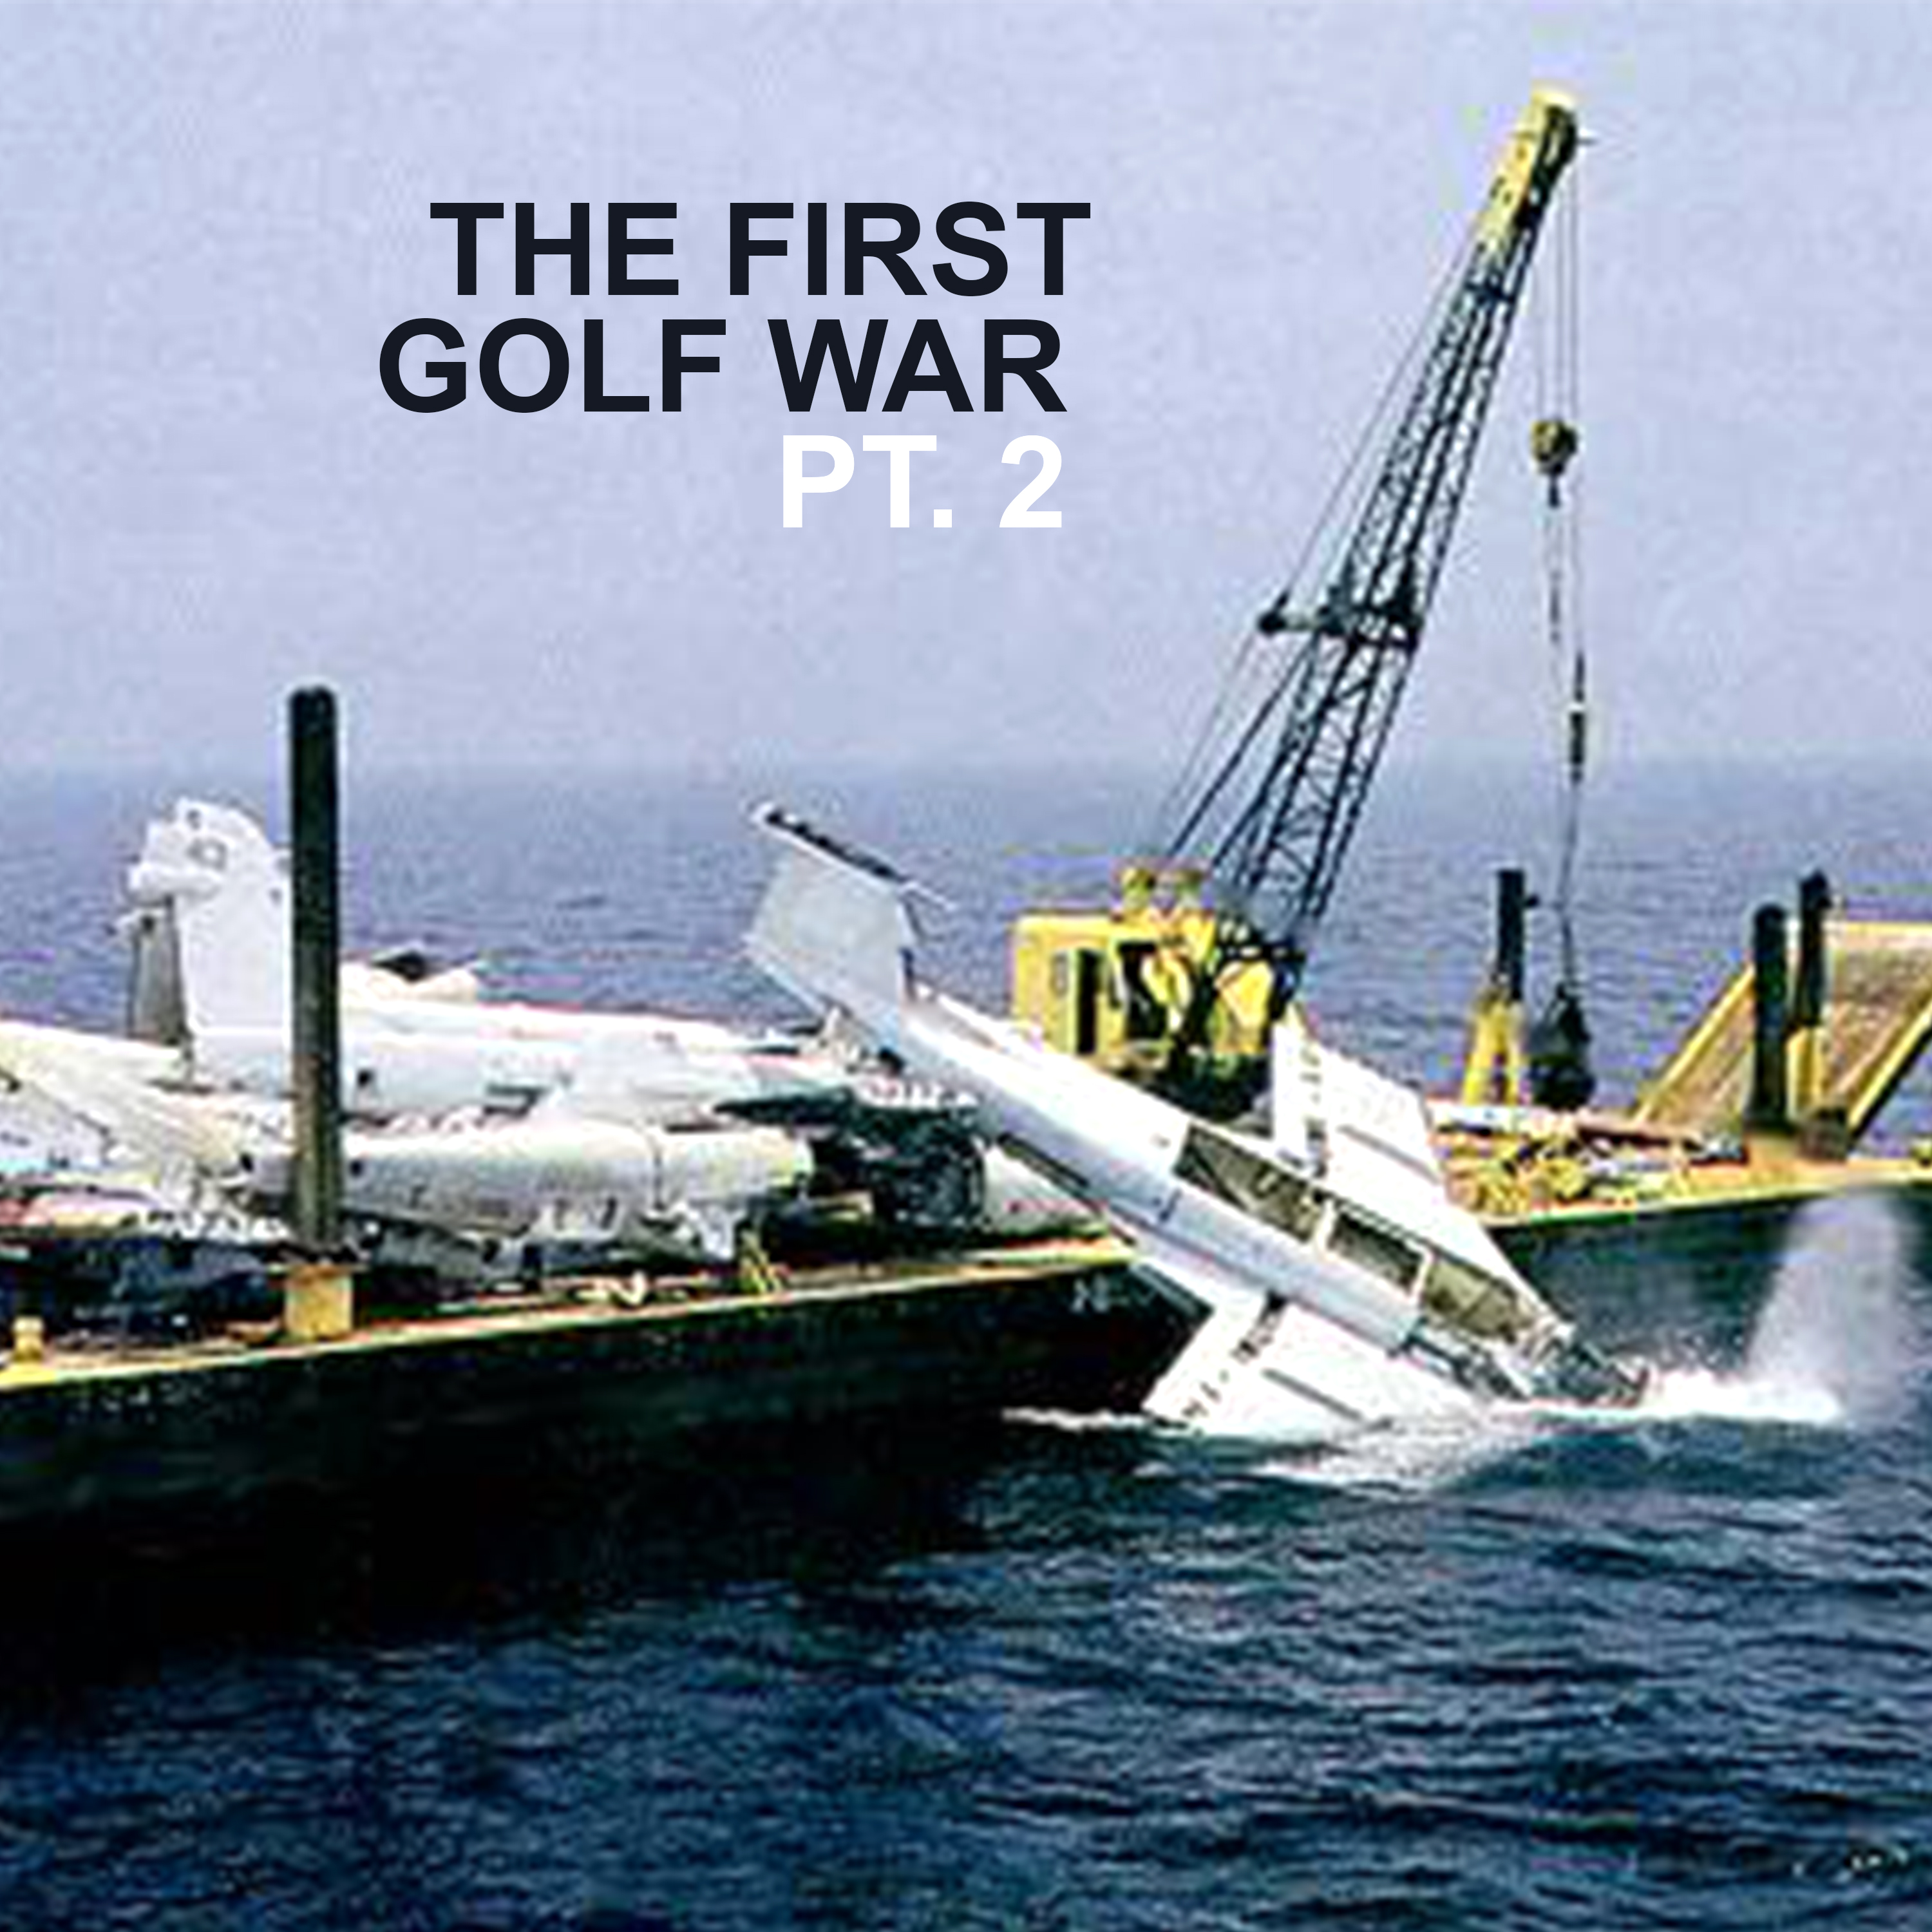 The First Golf War - Pt. 2